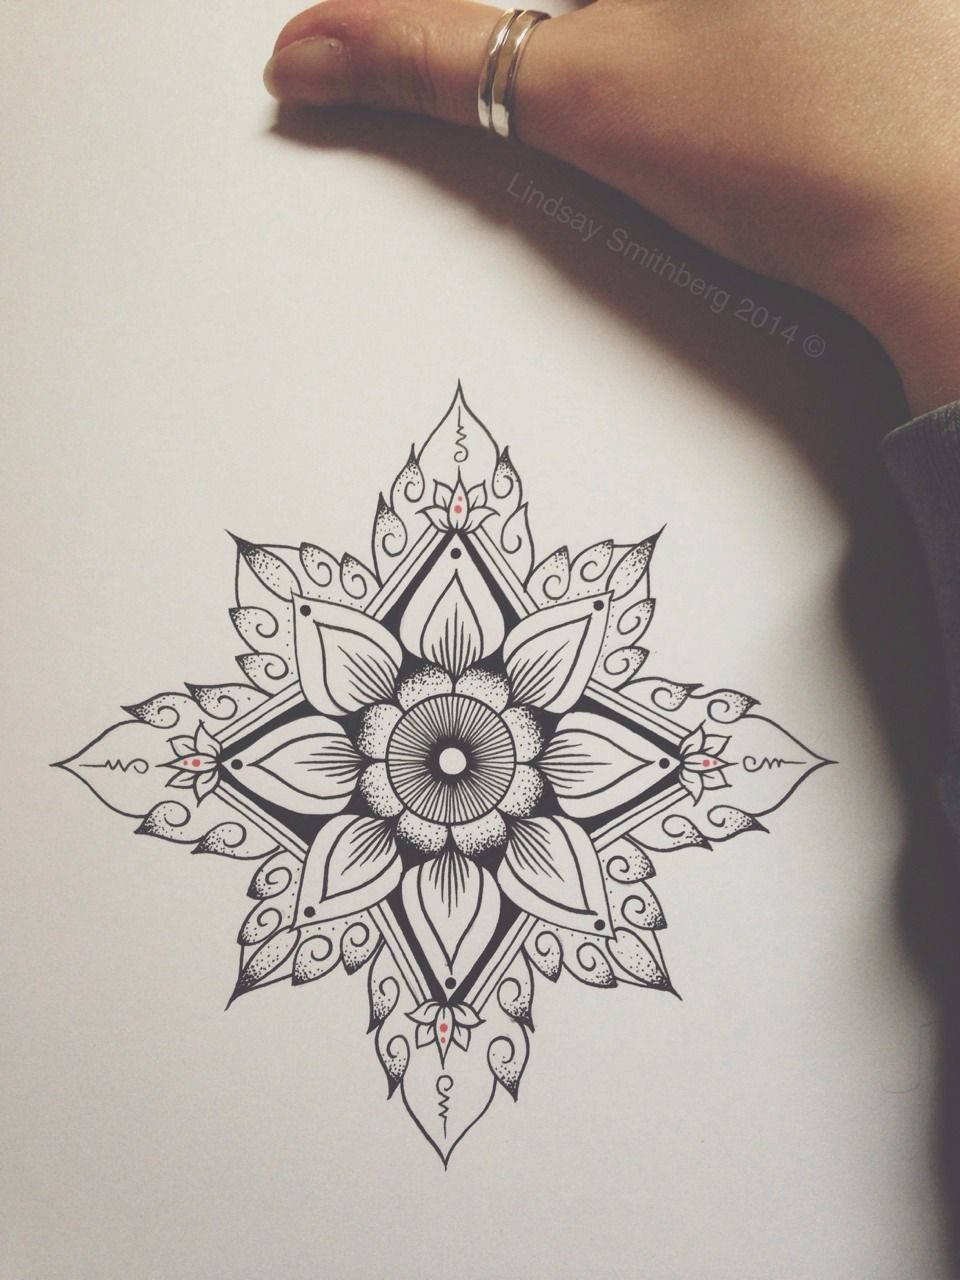 Im Seriously Considering Getting A Mandala Tattoo Whenever I Get